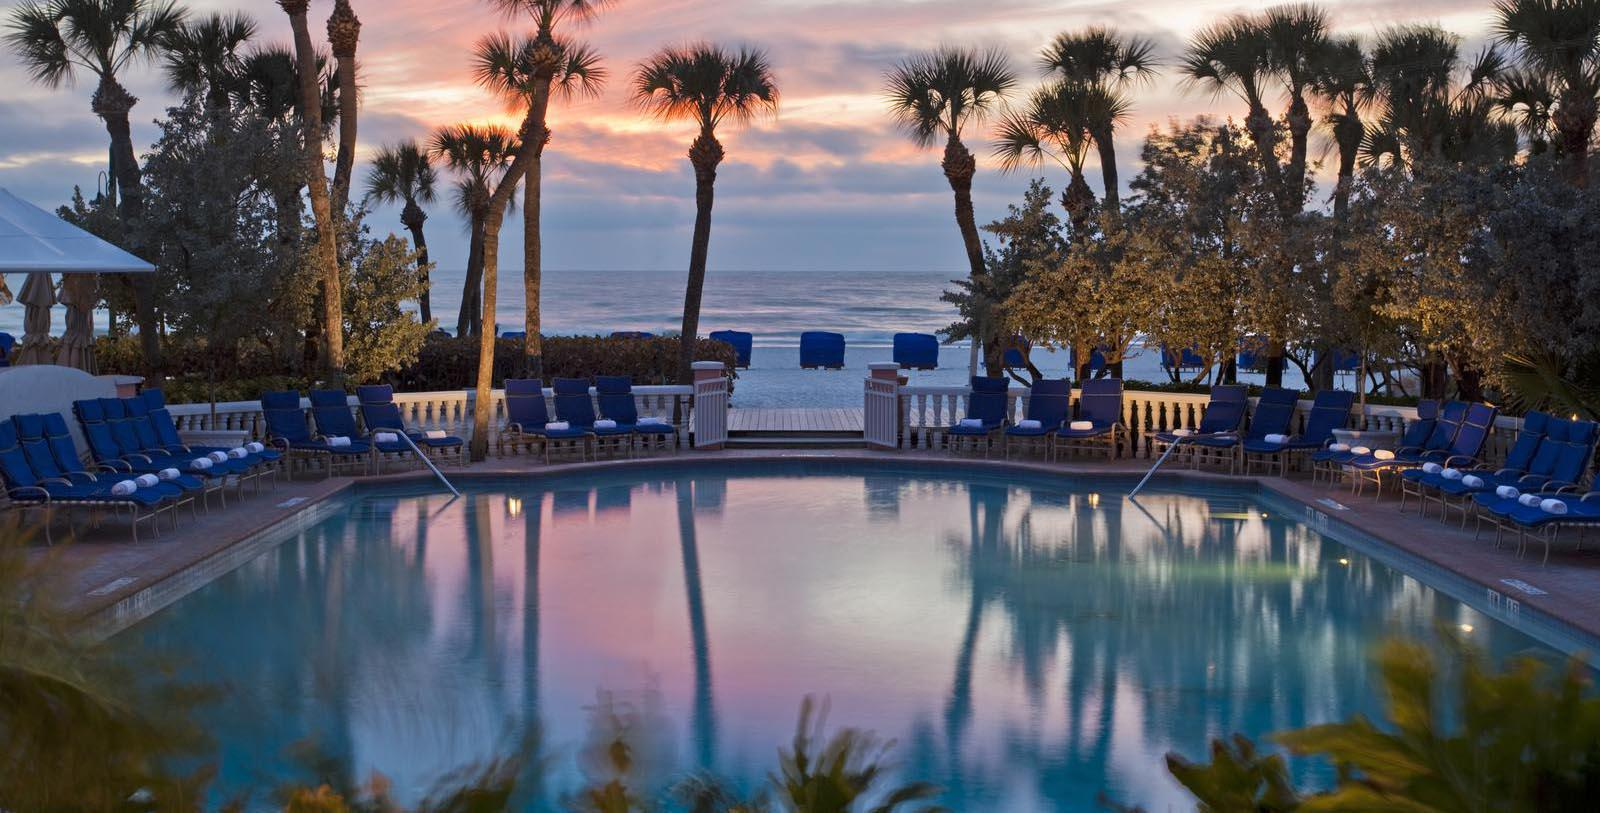 Image of Pool The Don CeSar, 1928, Member of Historic Hotels of America, in St. Petersburg, Florida, Special Occasions